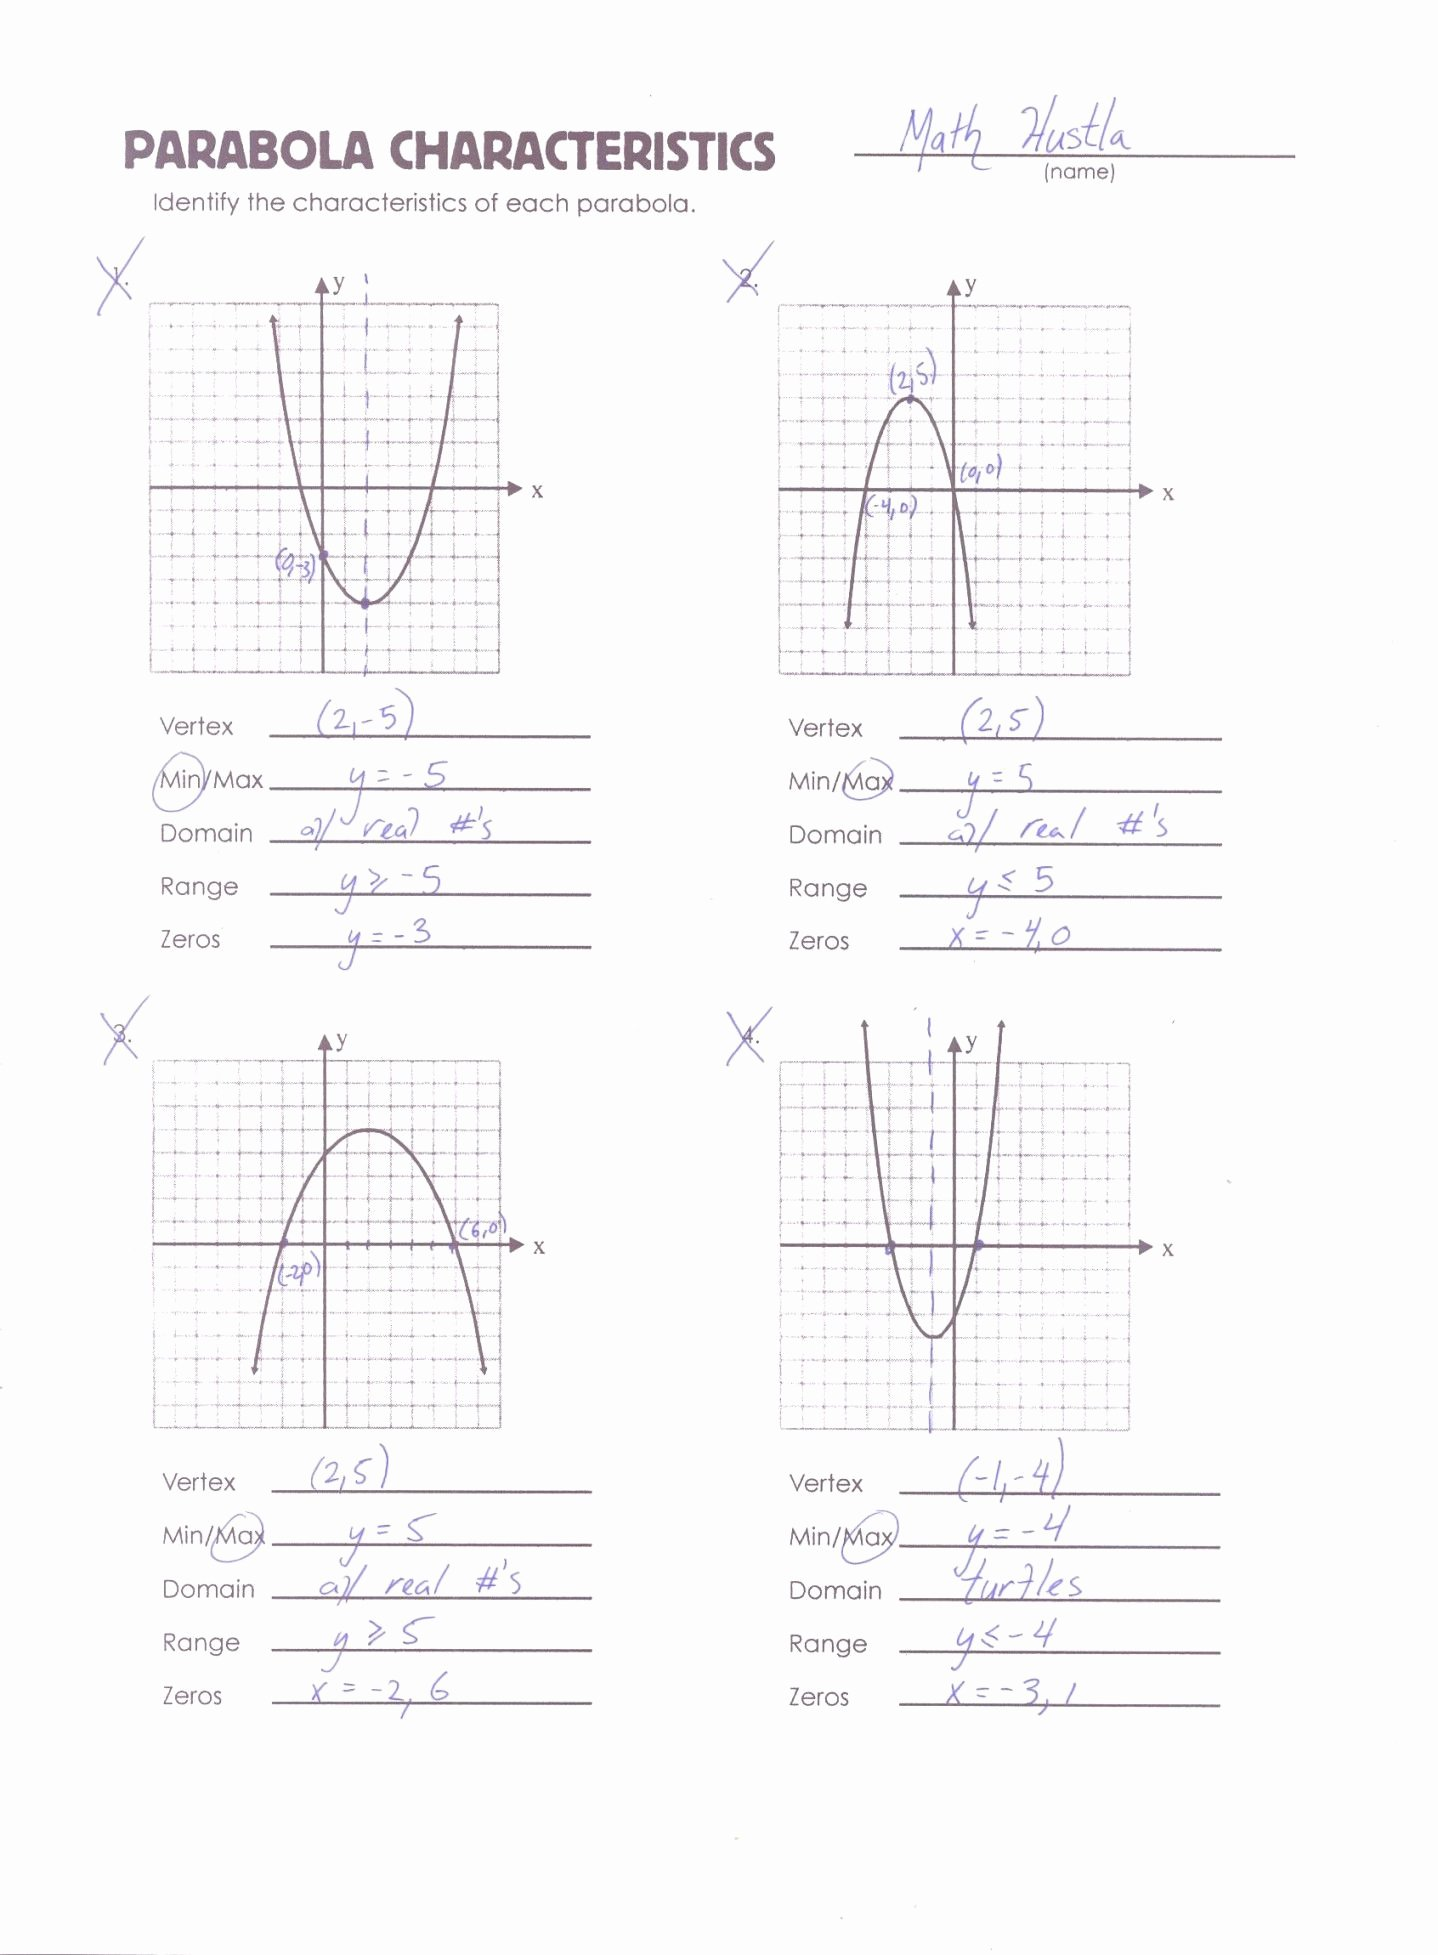 Graphing Quadratics Worksheet Answers Awesome Graphing Quadratics Review Worksheet